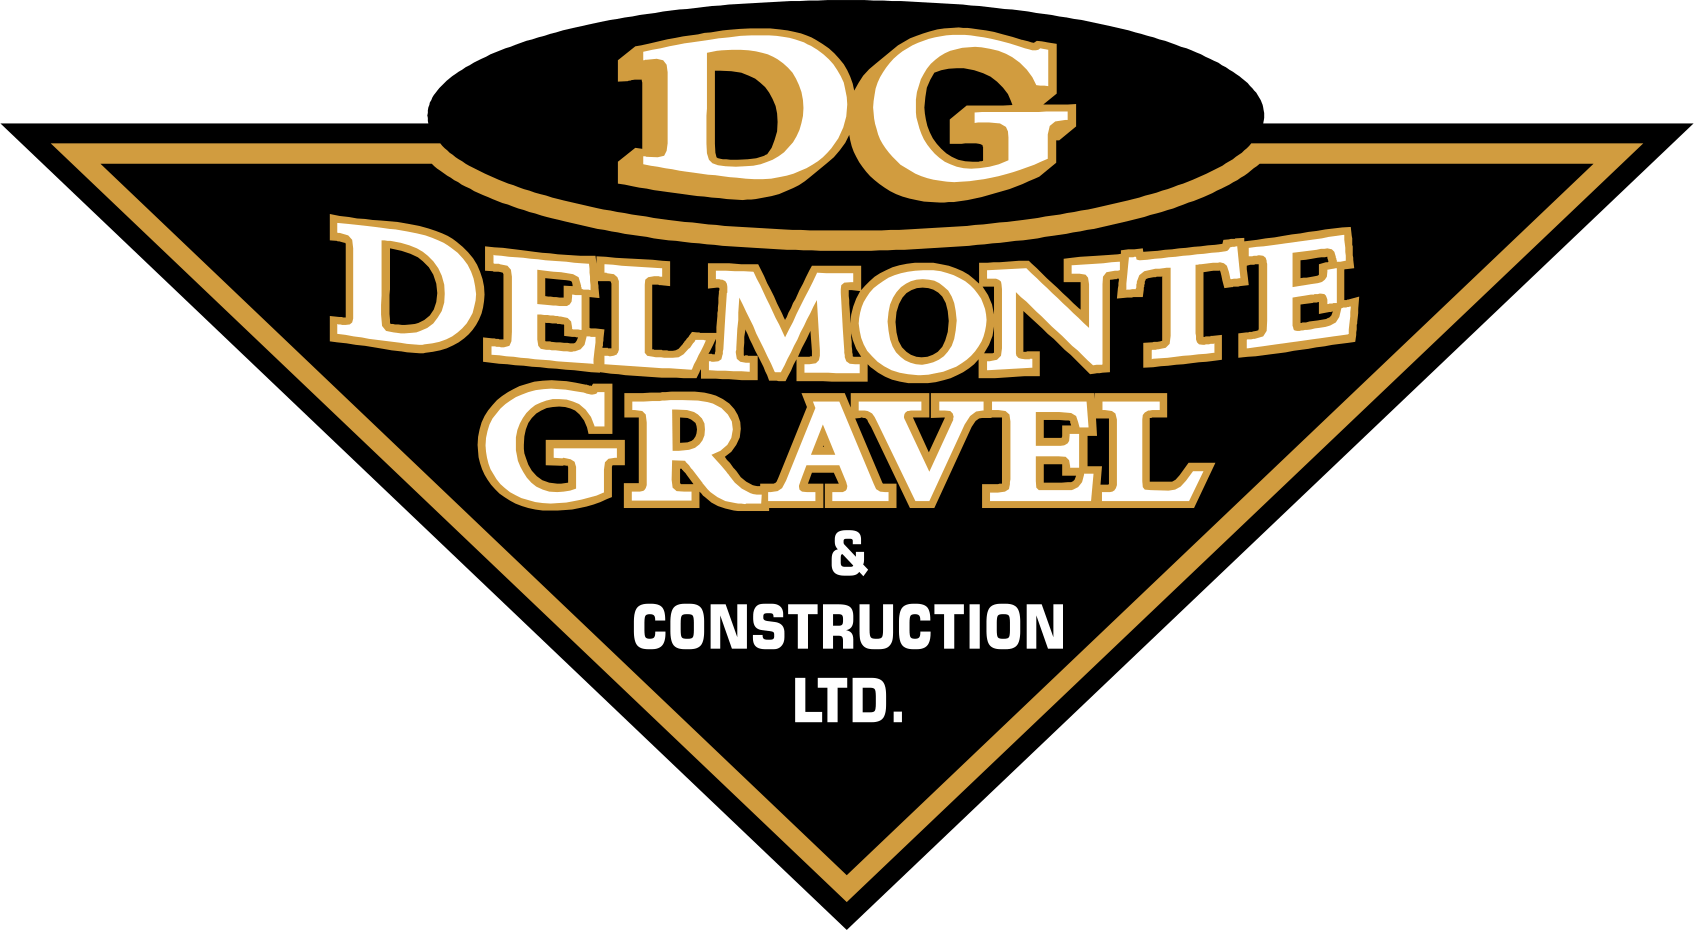 Delmonte Gravel & Construction LTD